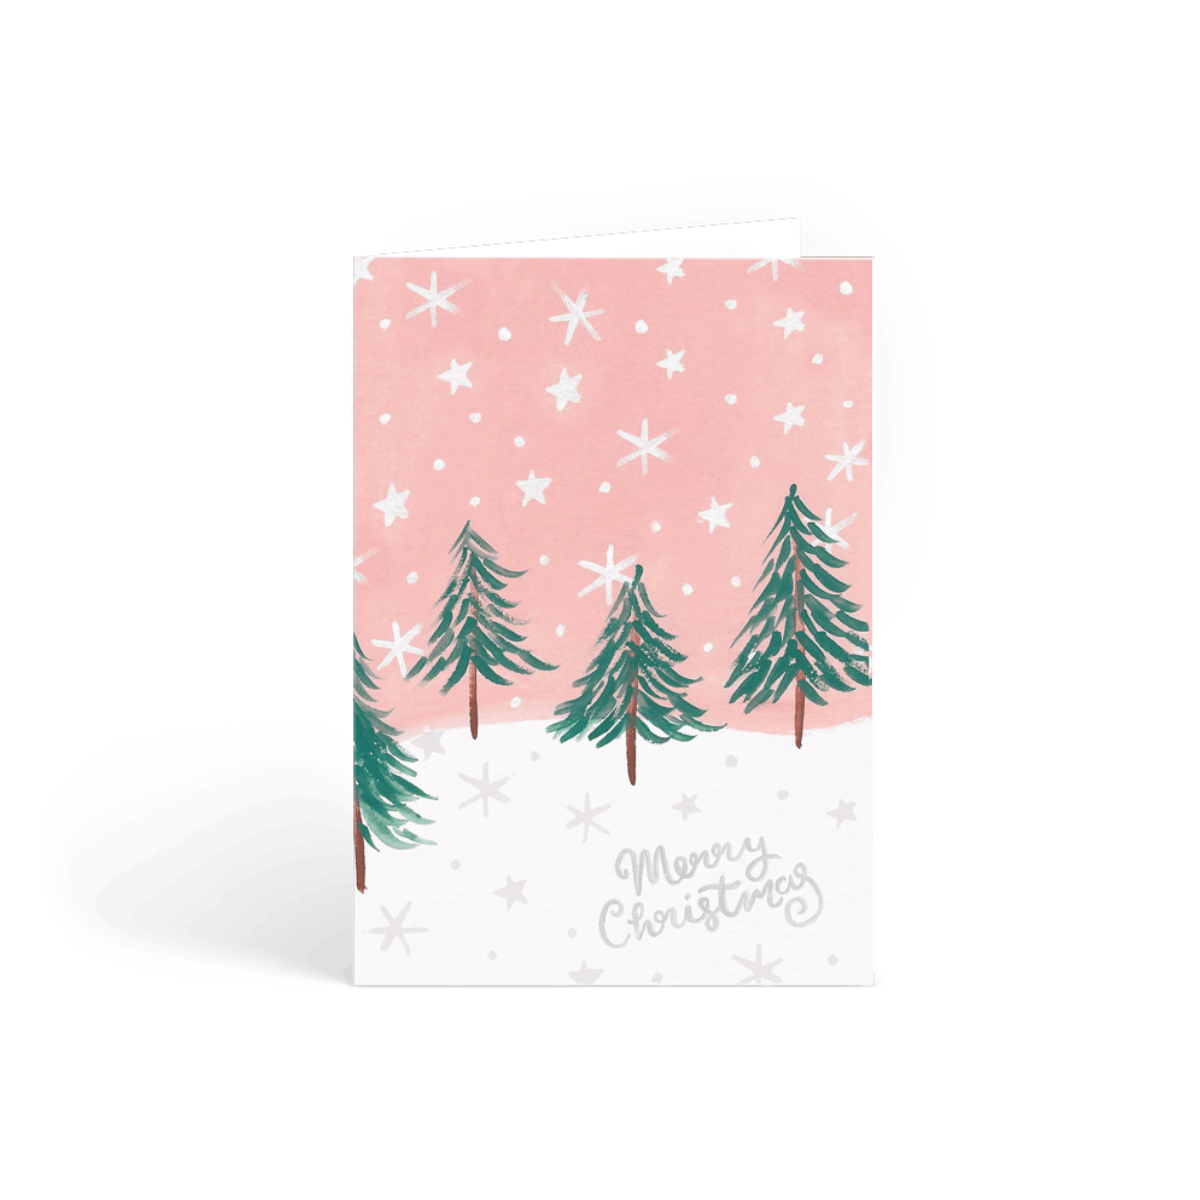 Https%3a%2f%2fwww.papier.com%2fproduct image%2f30186%2f2%2fchristmas fir 7613 front 1568146532.png?ixlib=rb 1.1